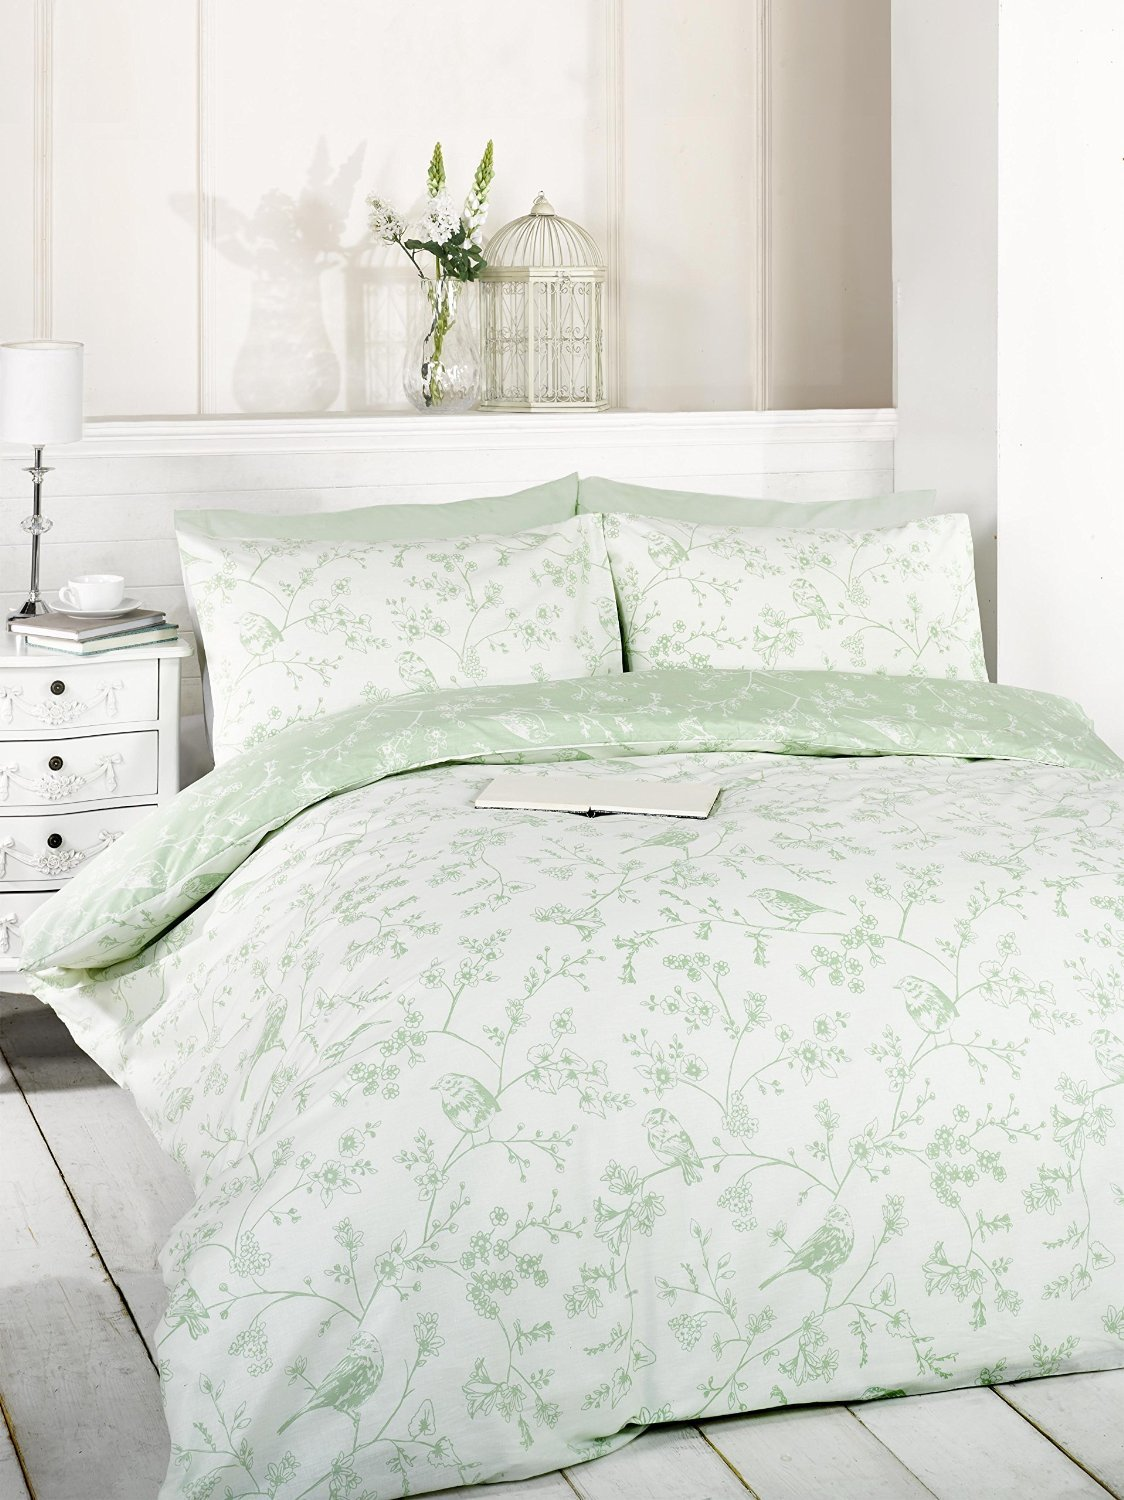 sets bed matching white luxury set cover euro cotton pillow modern comforter duvet shams ruffled king decorative sweetgalas metal green polyester platform reversible fill